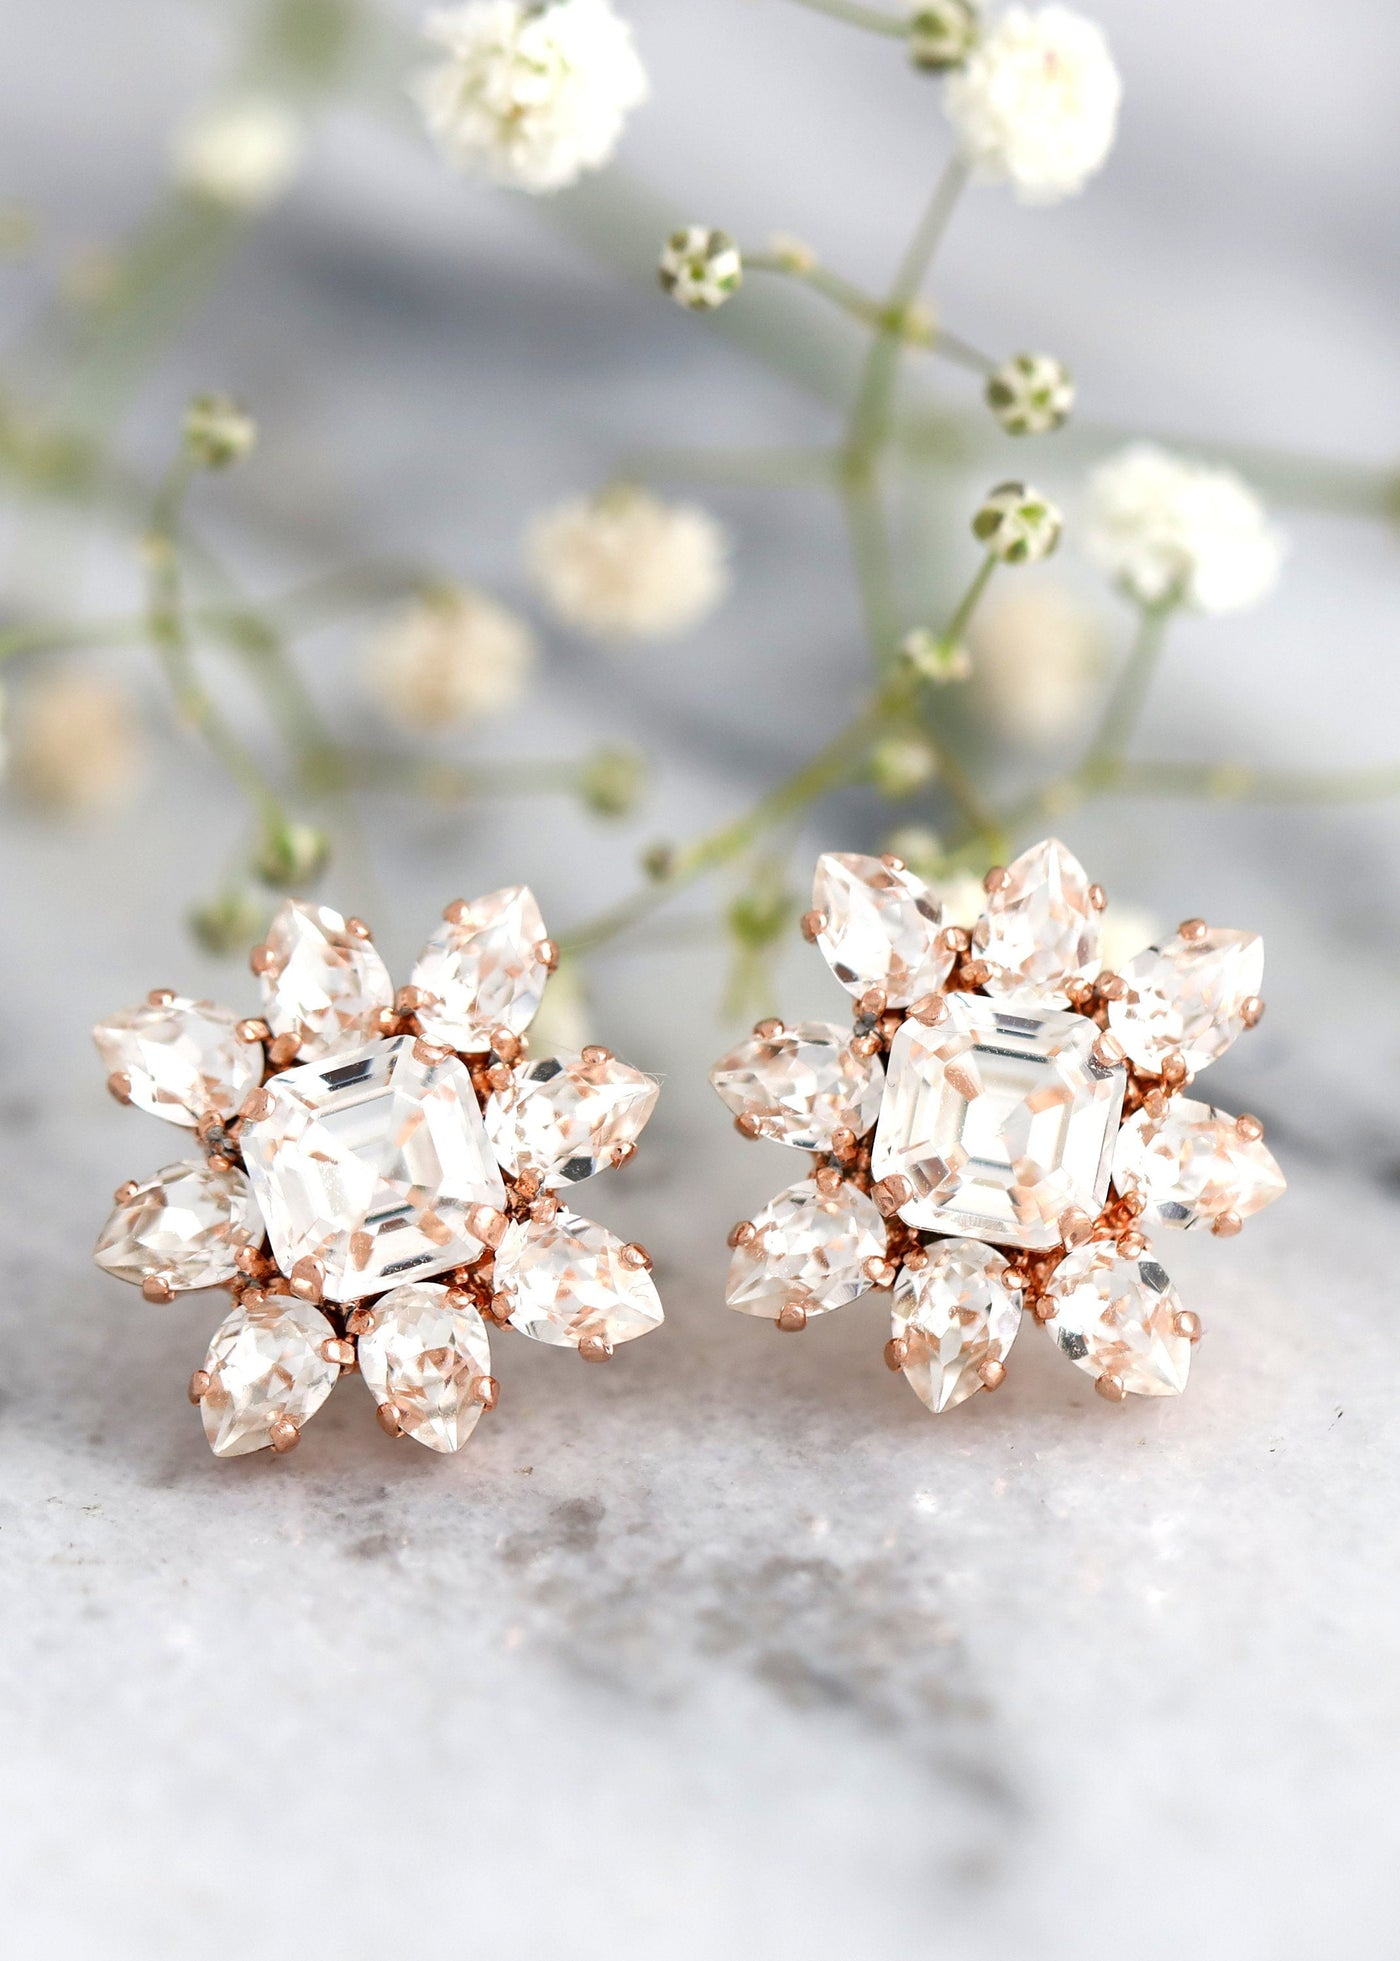 Bridal Earrings, Bridal Cluster Crystal Earrings, Bridal CLASSIC STUD EARRINGS, Bridal Swarovski Crystal Earrings, Bridesmaids Earrings